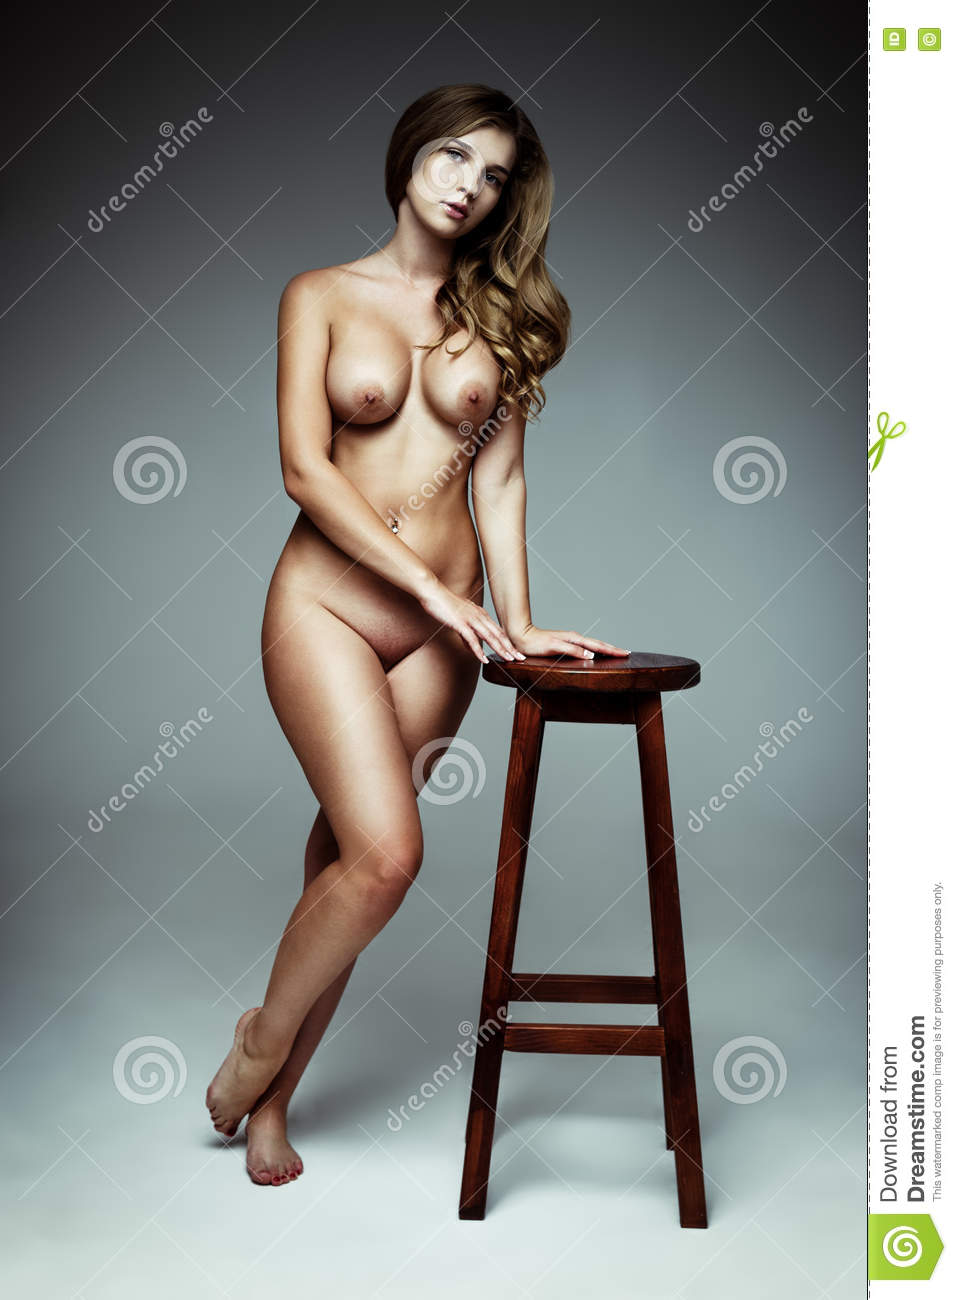 Nude Slim Body Of The Beautiful Woman With Long Hair Stock Photo